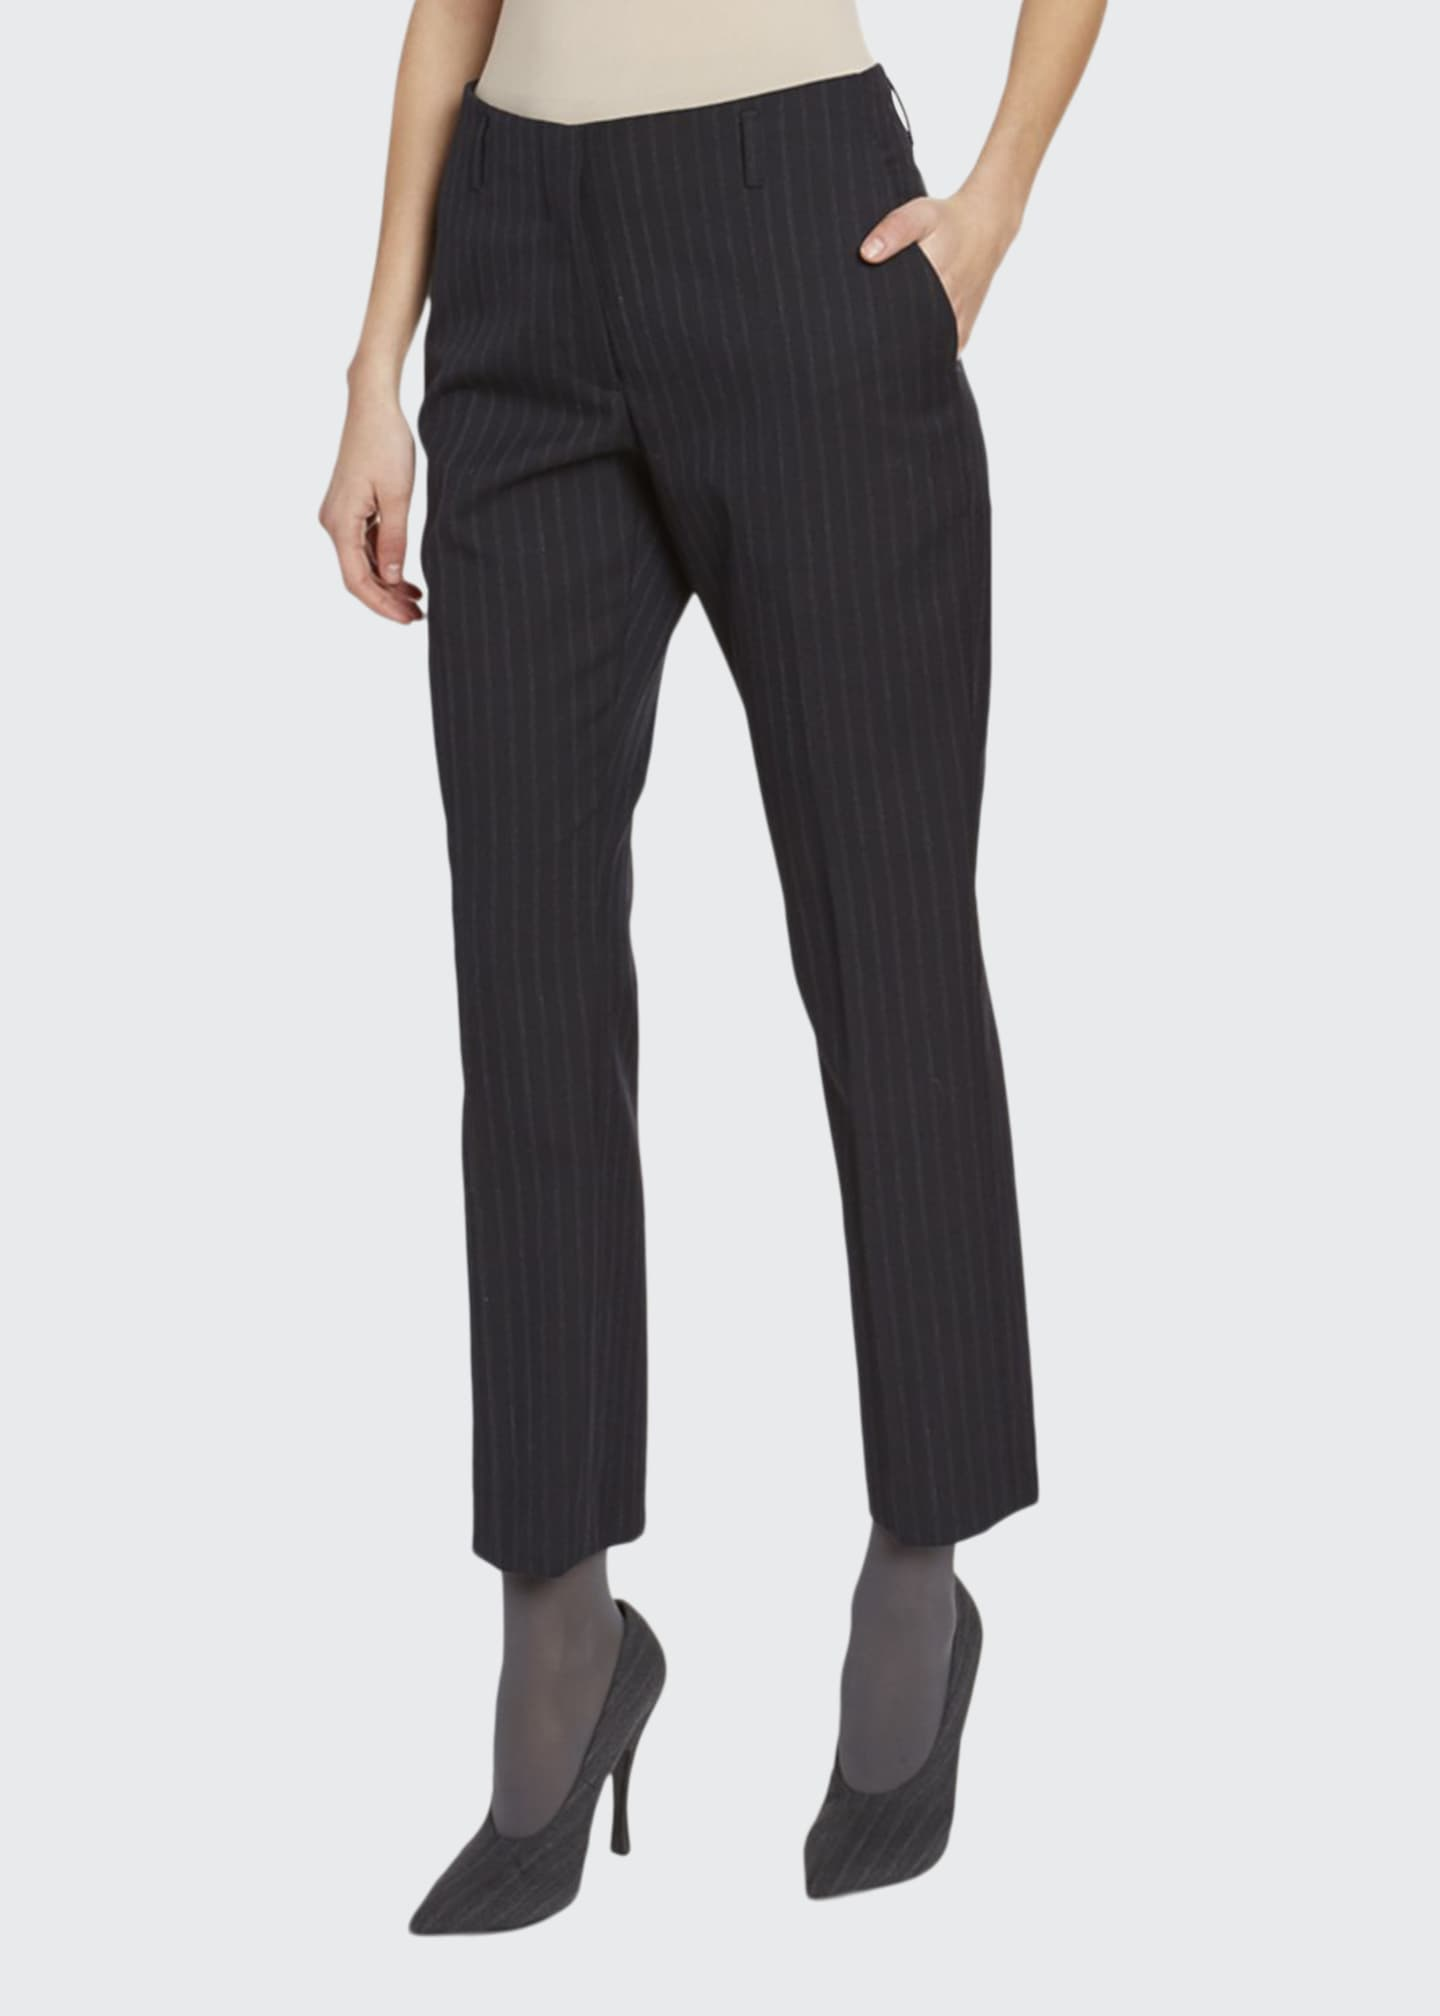 Dries Van Noten Pinstriped Cropped Straight-Leg Pants